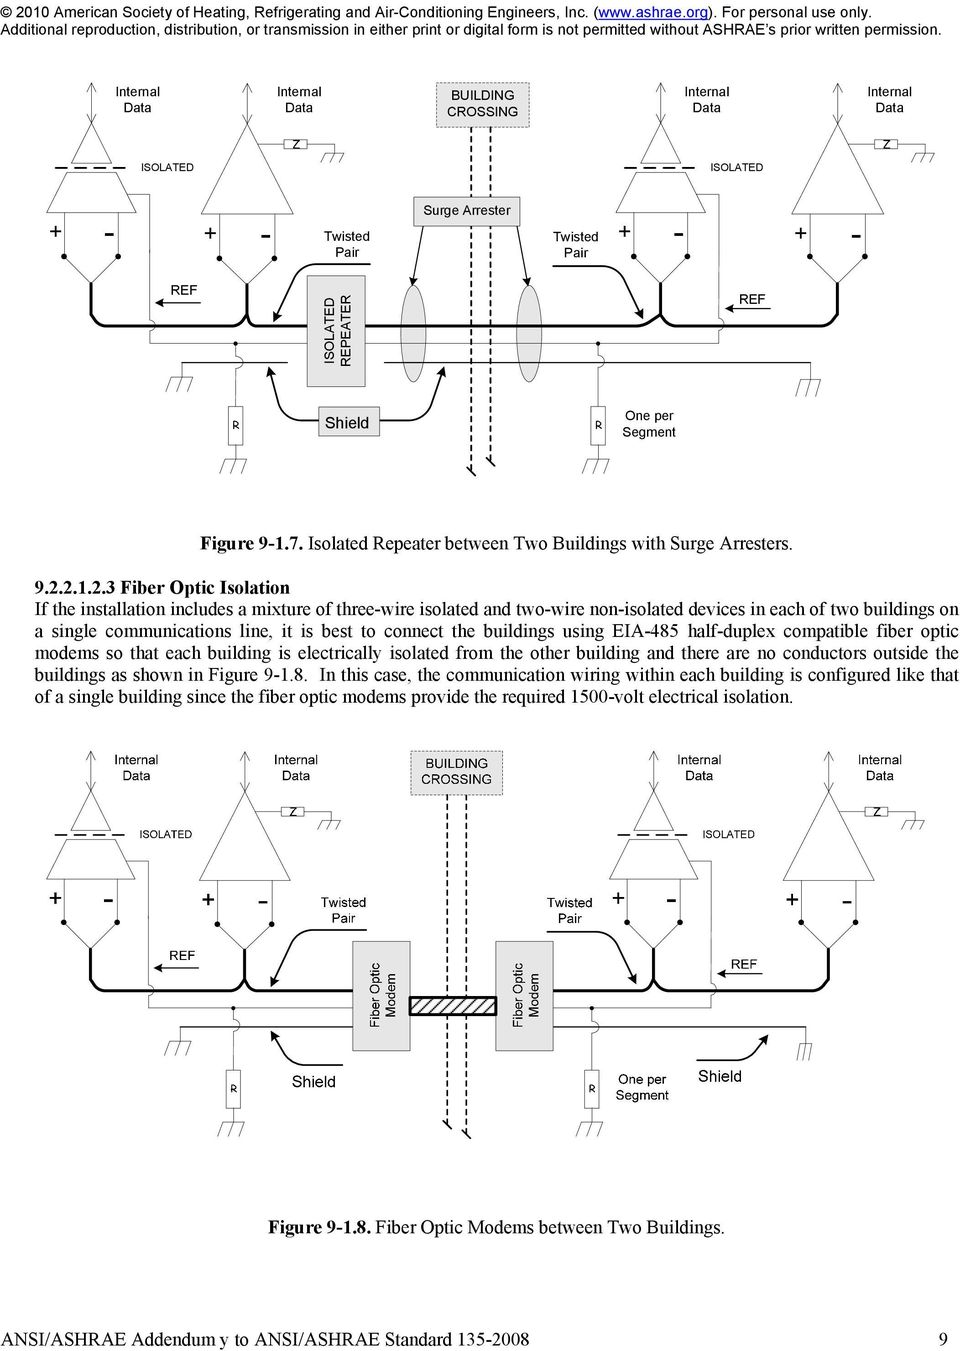 Ashrae Standard Bacnet A Data Communication Protocol For Building Wiring Diagram 2123 Fiber Optic Isolation If The Installation Includes Mixture Of Three Wire